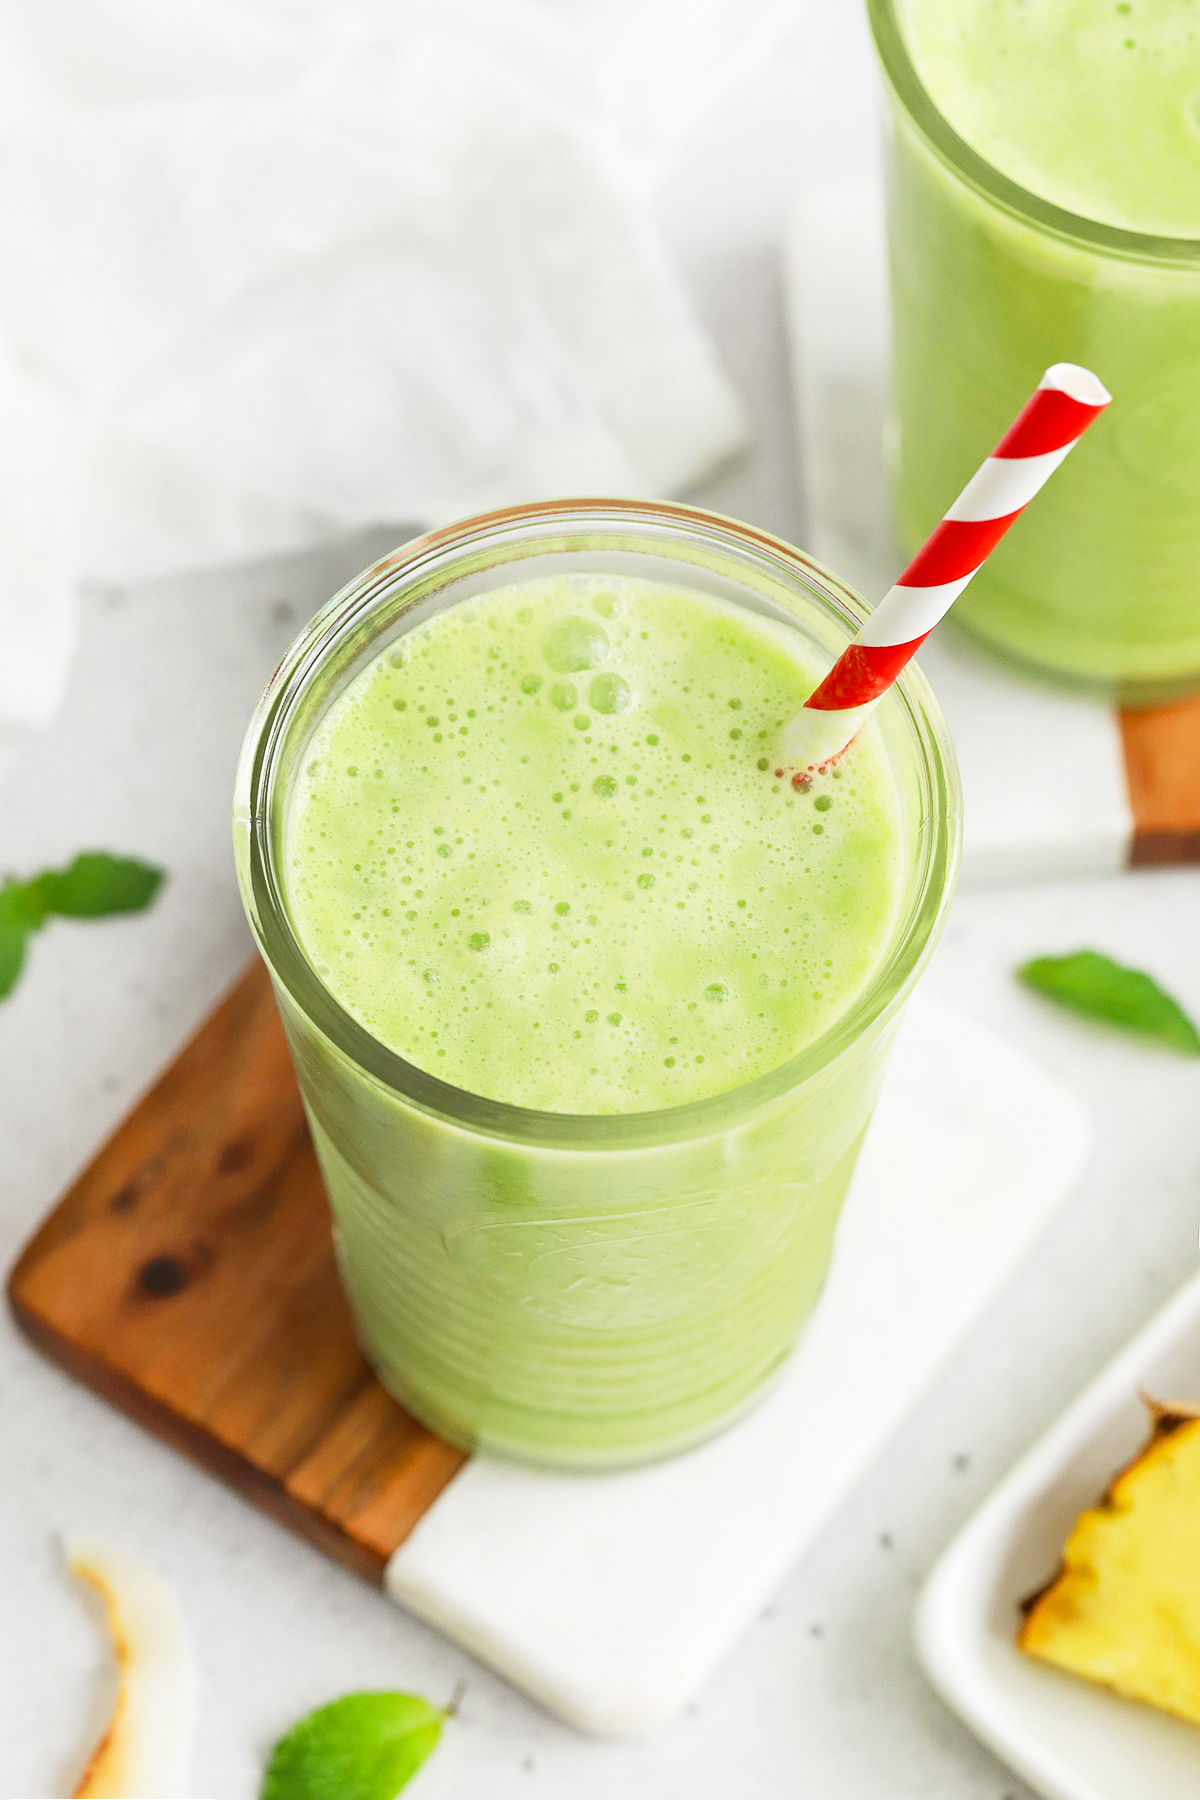 Close up Front view of a glass of pineapple mint smoothie with a red striped straw